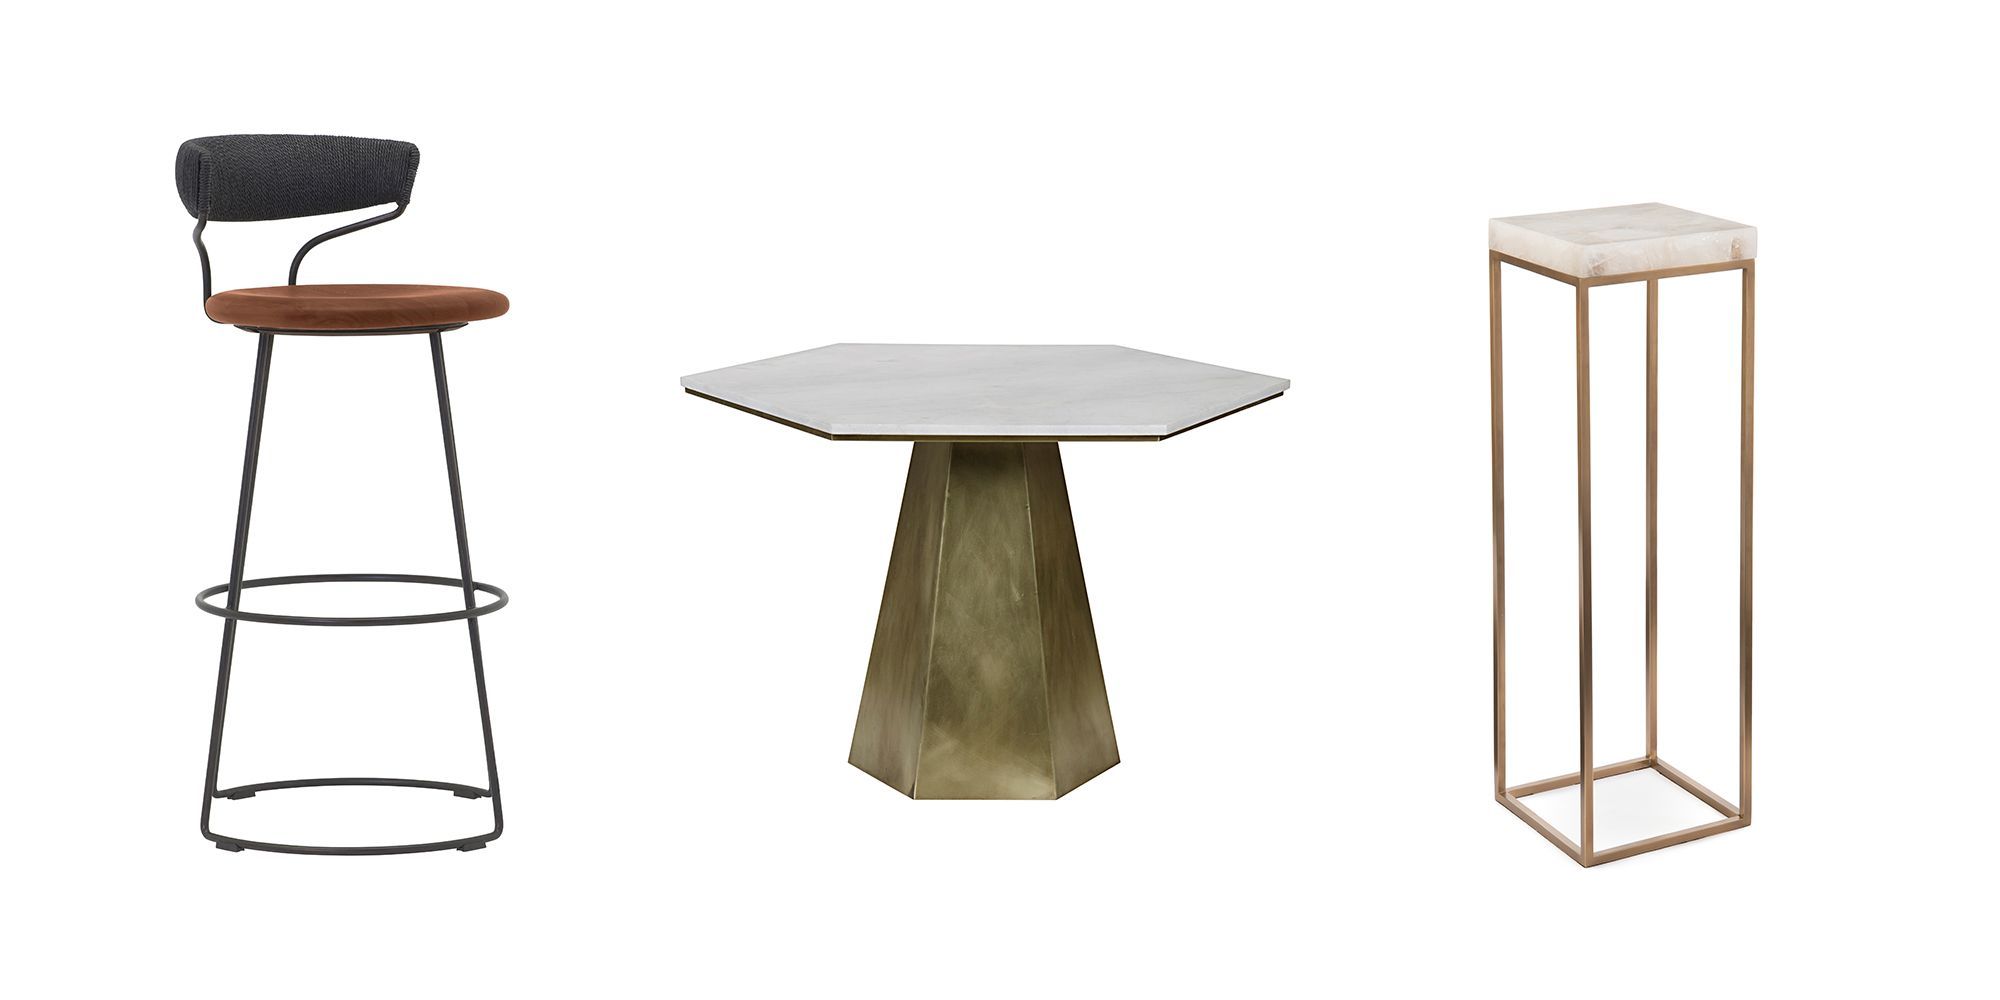 22 Pieces Of Minimalist Furniture That Will Always Be On-Trend